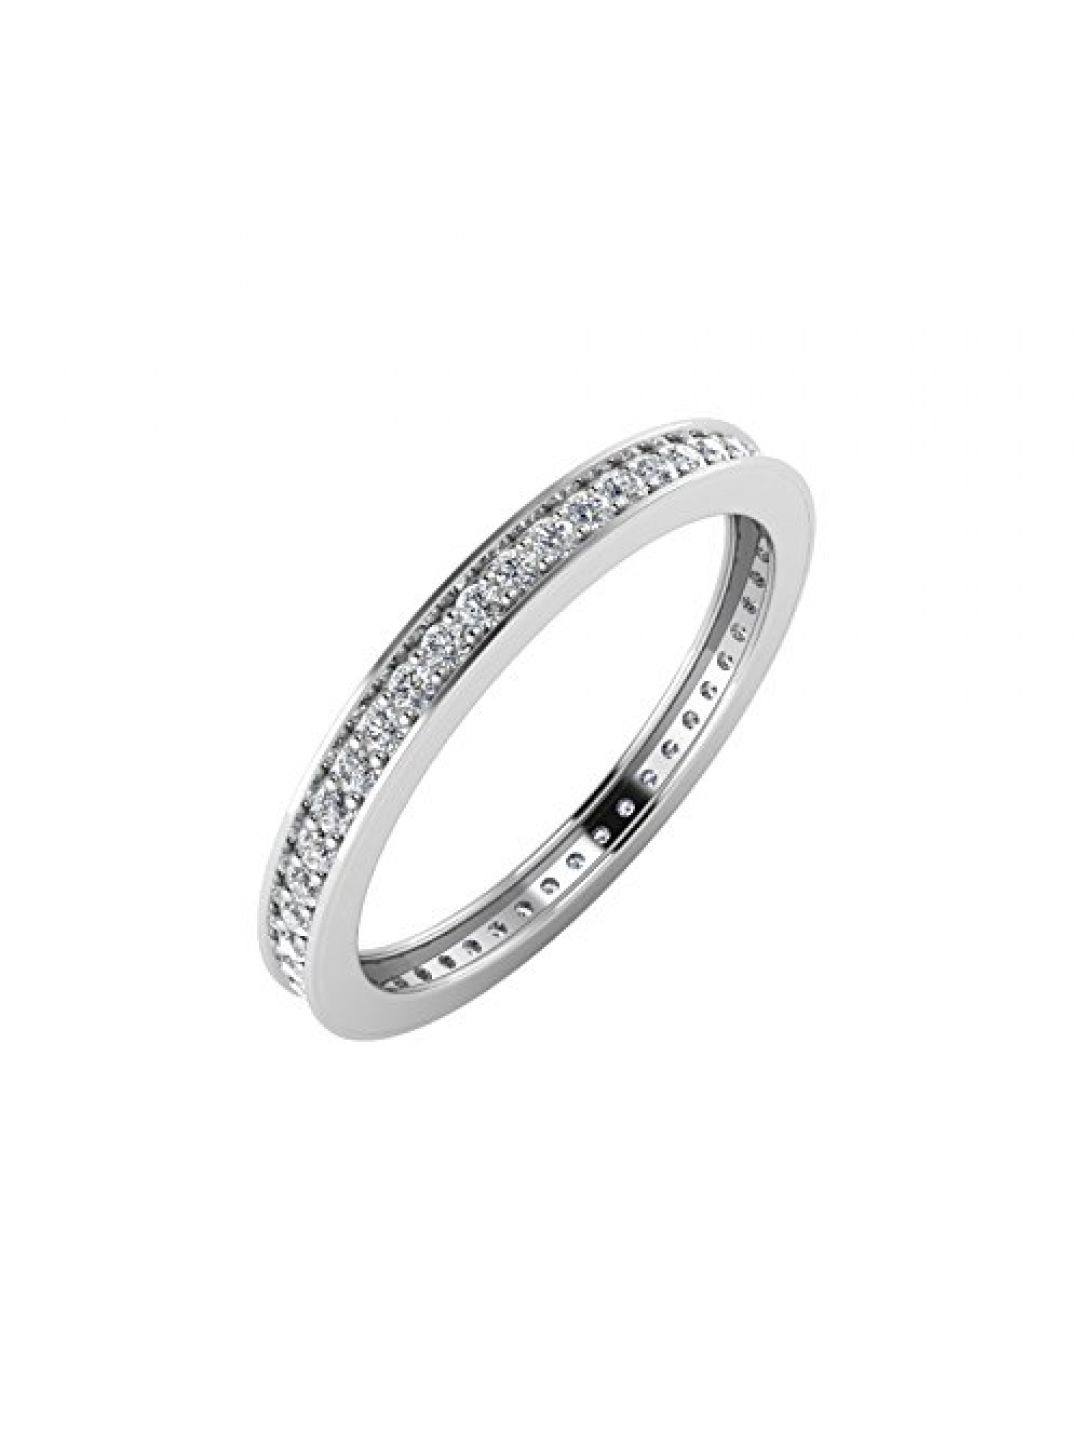 Igi Certified 10K White Gold Pave Set Diamond Eternity Wedding/anniversary Band Ring (1/4 Carat) In 2020 Certified Diamond Anniversary Bands In White Gold (View 8 of 25)